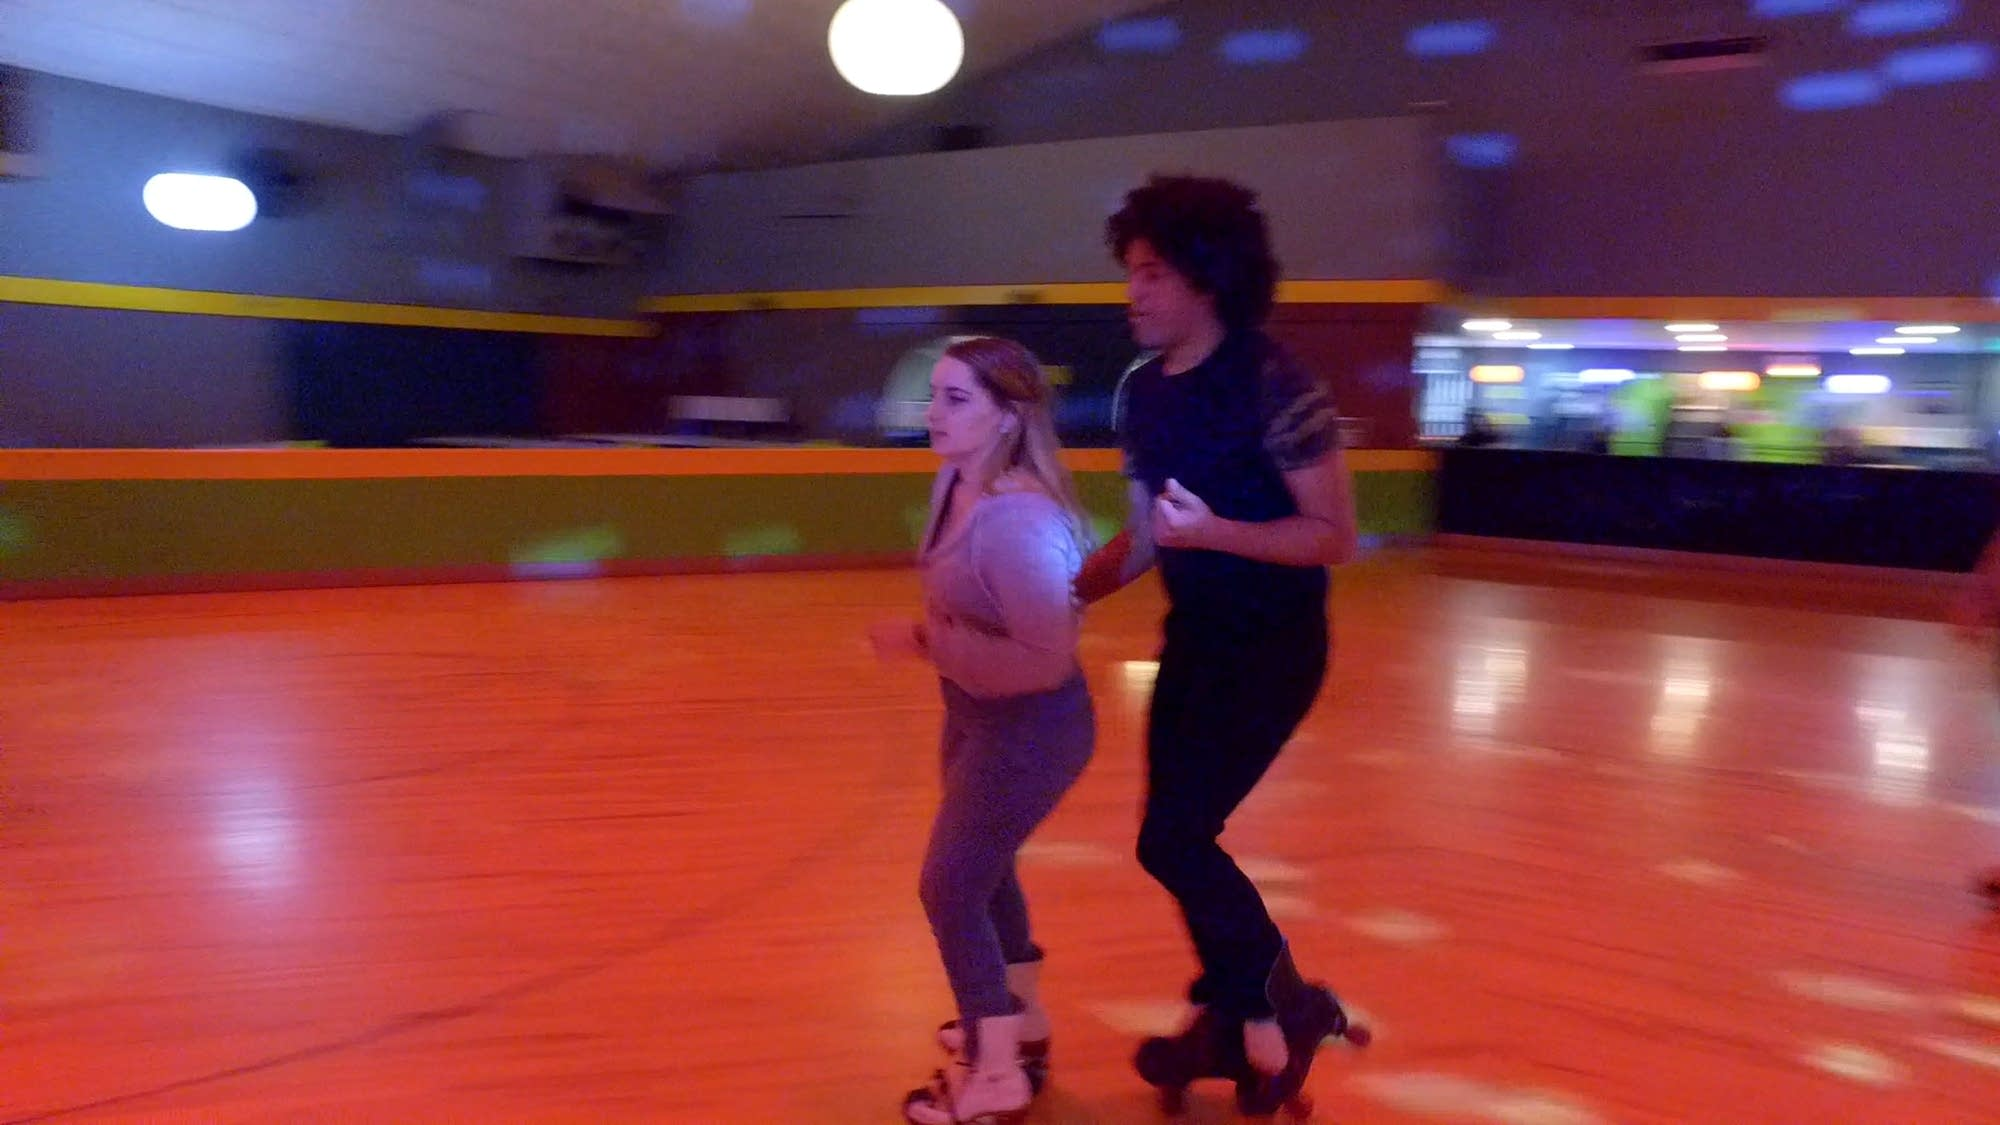 Two people roller skate side by side.